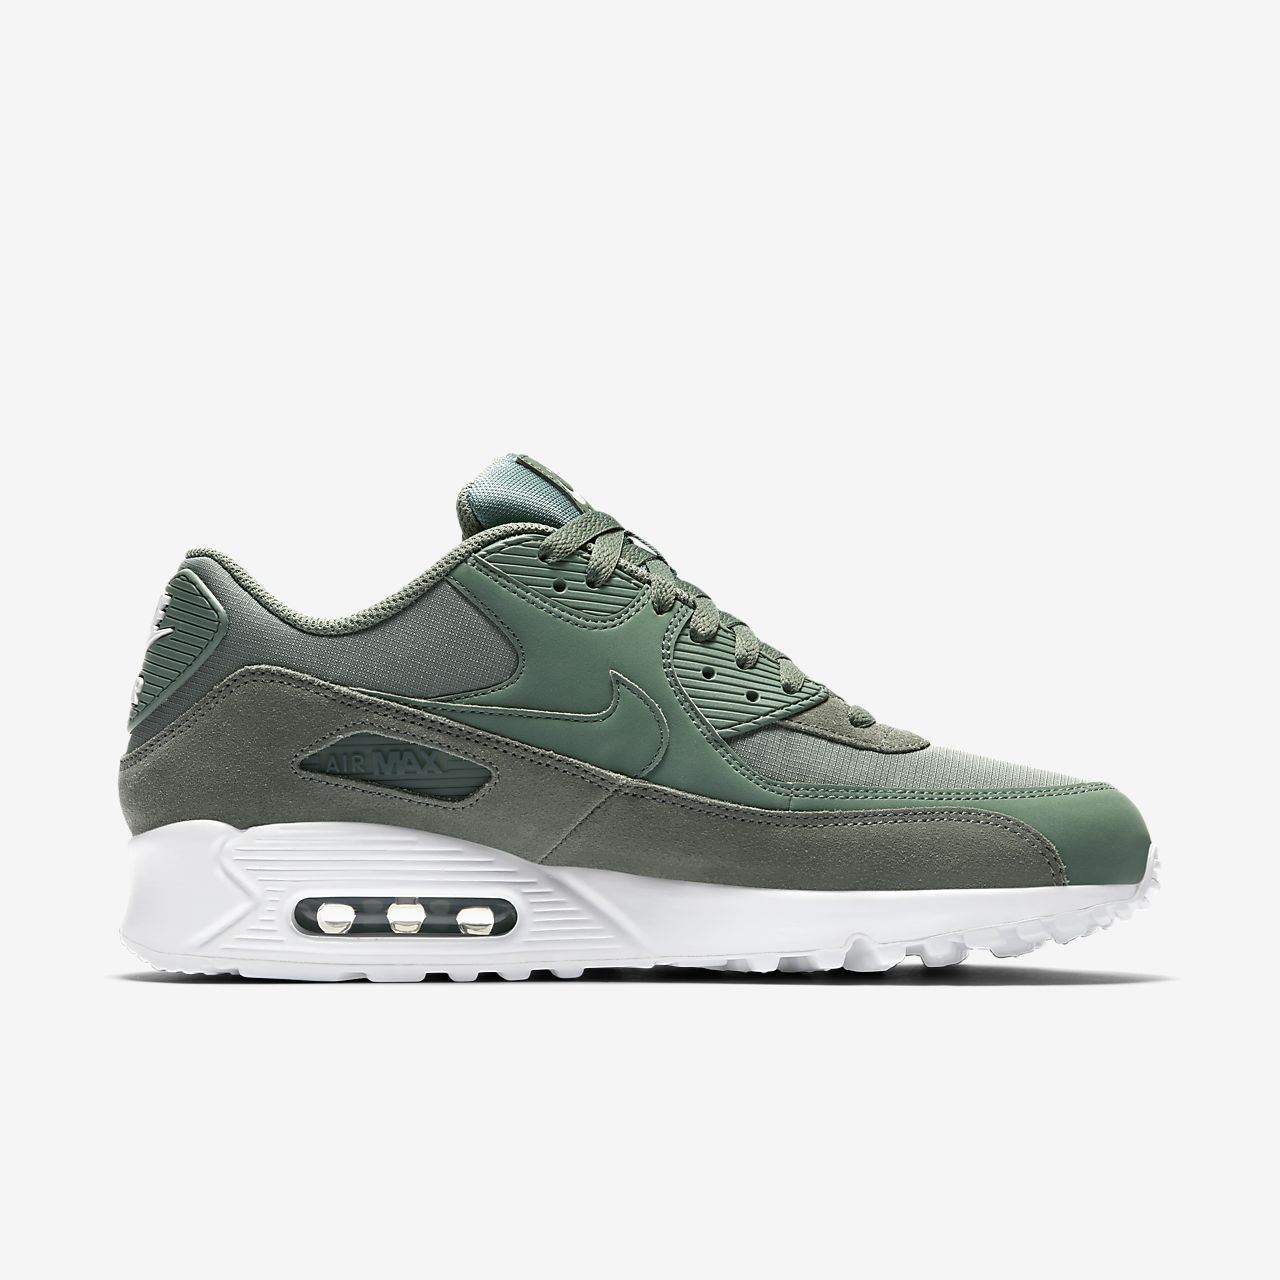 reputable site 1909f 524cb ... new zealand nike air max 90 essential. 1ff1b 4b039